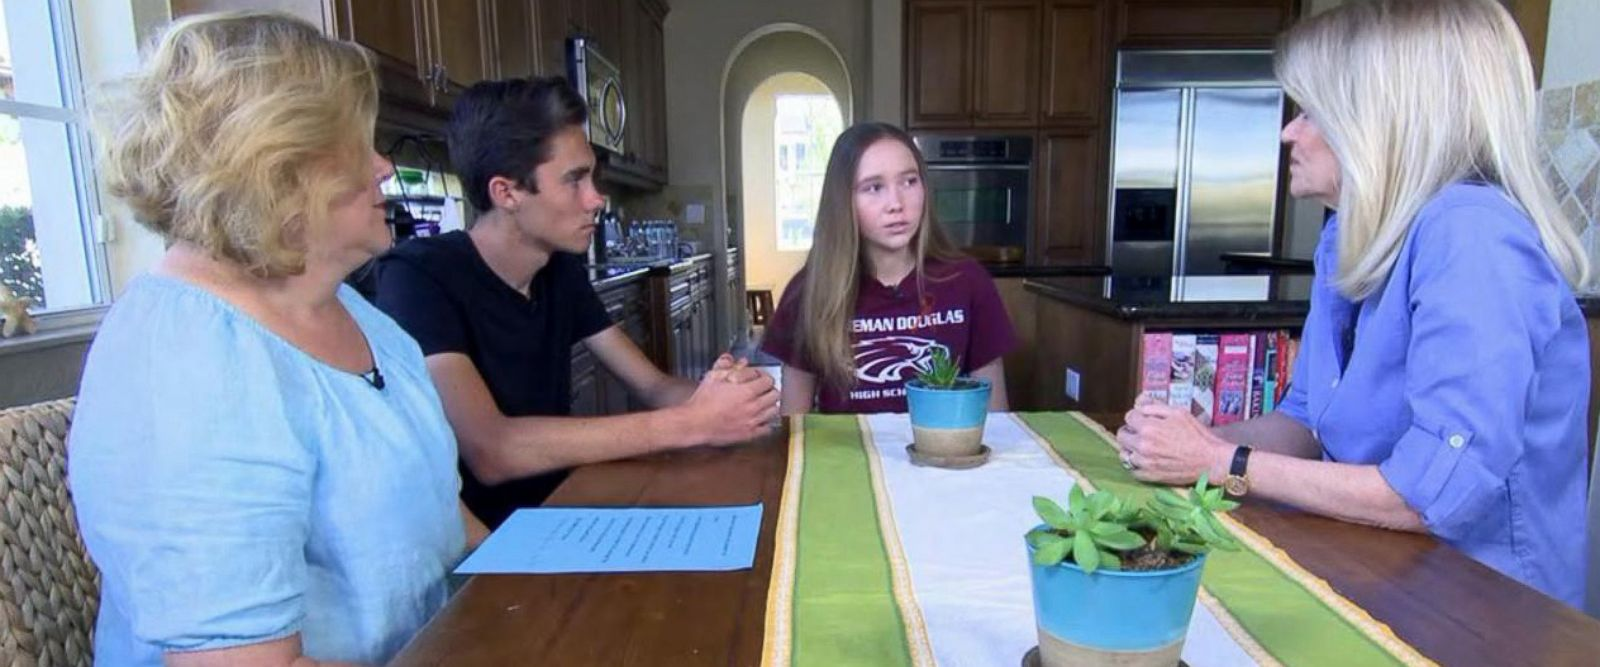 VIDEO: Florida student says politicians 'not doing their jobs' after another school shooting